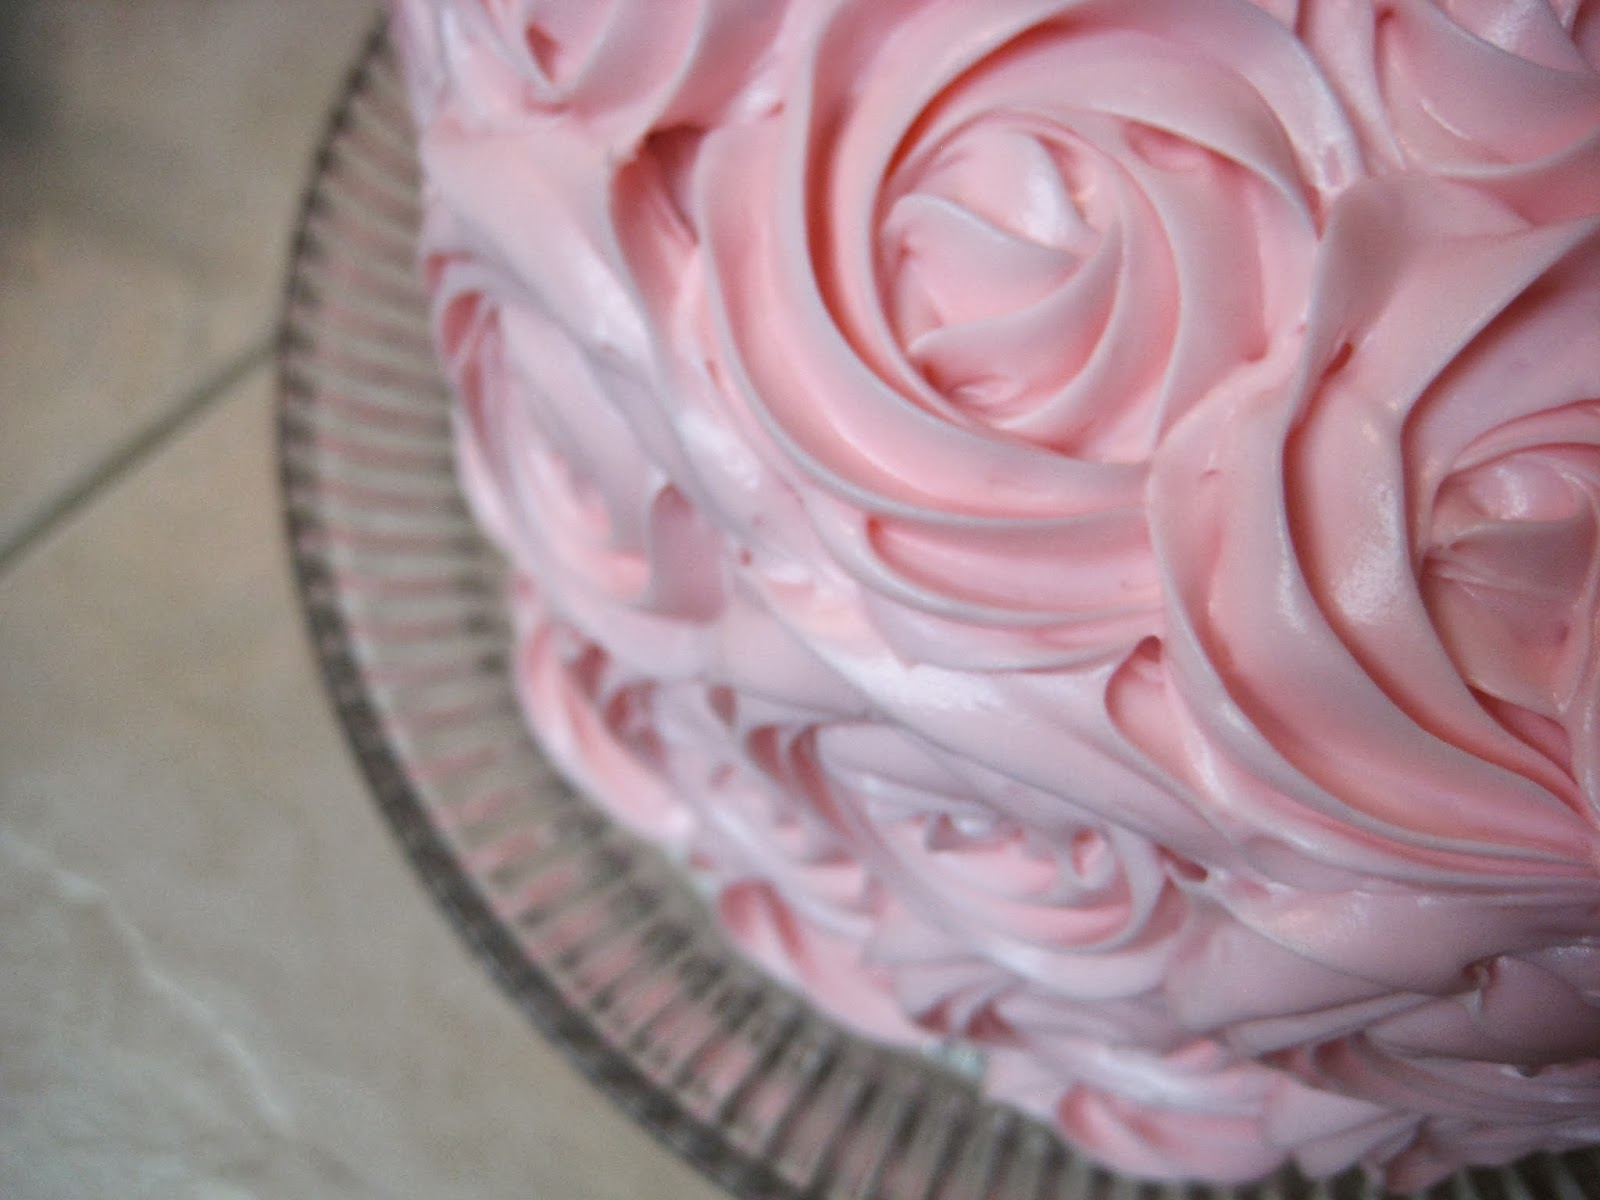 Shabby Chic Baby Shower Pink Rose Cake - Close-Up Overhead View